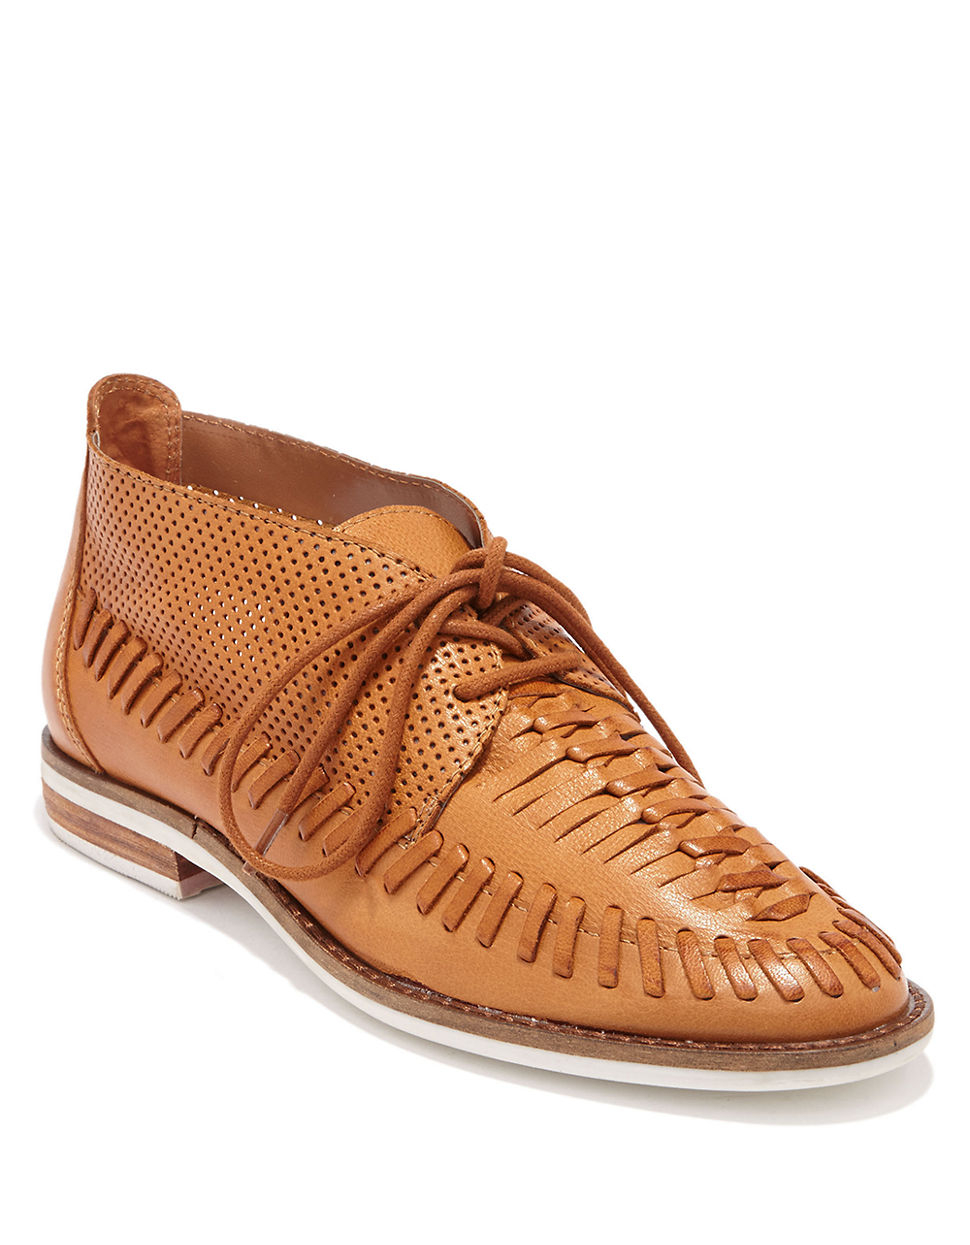 Dolce Vita Fio Leather Shoes